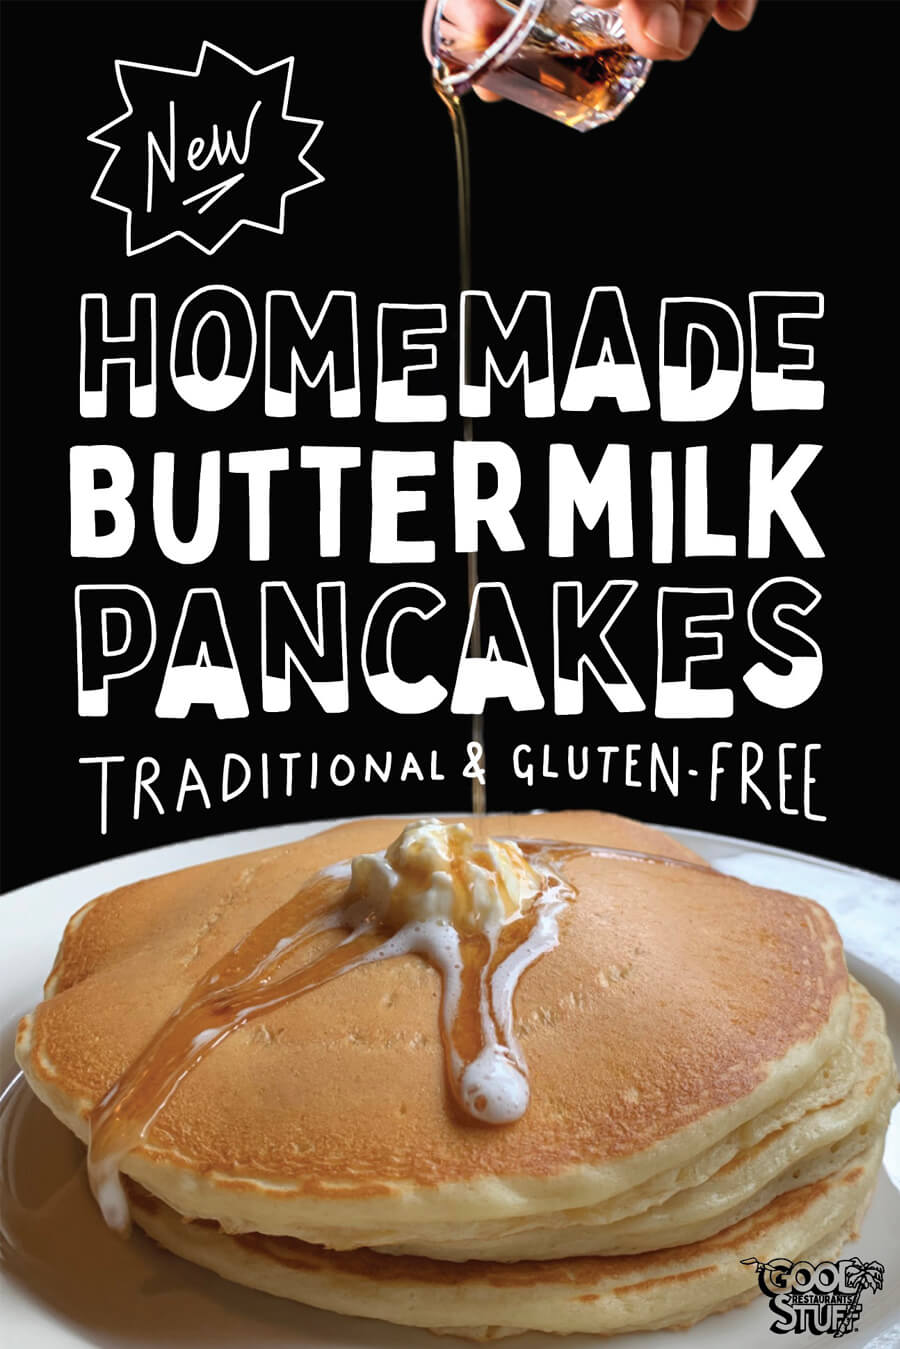 New homemade buttermilk pancakes. traditional & gluten-free available.